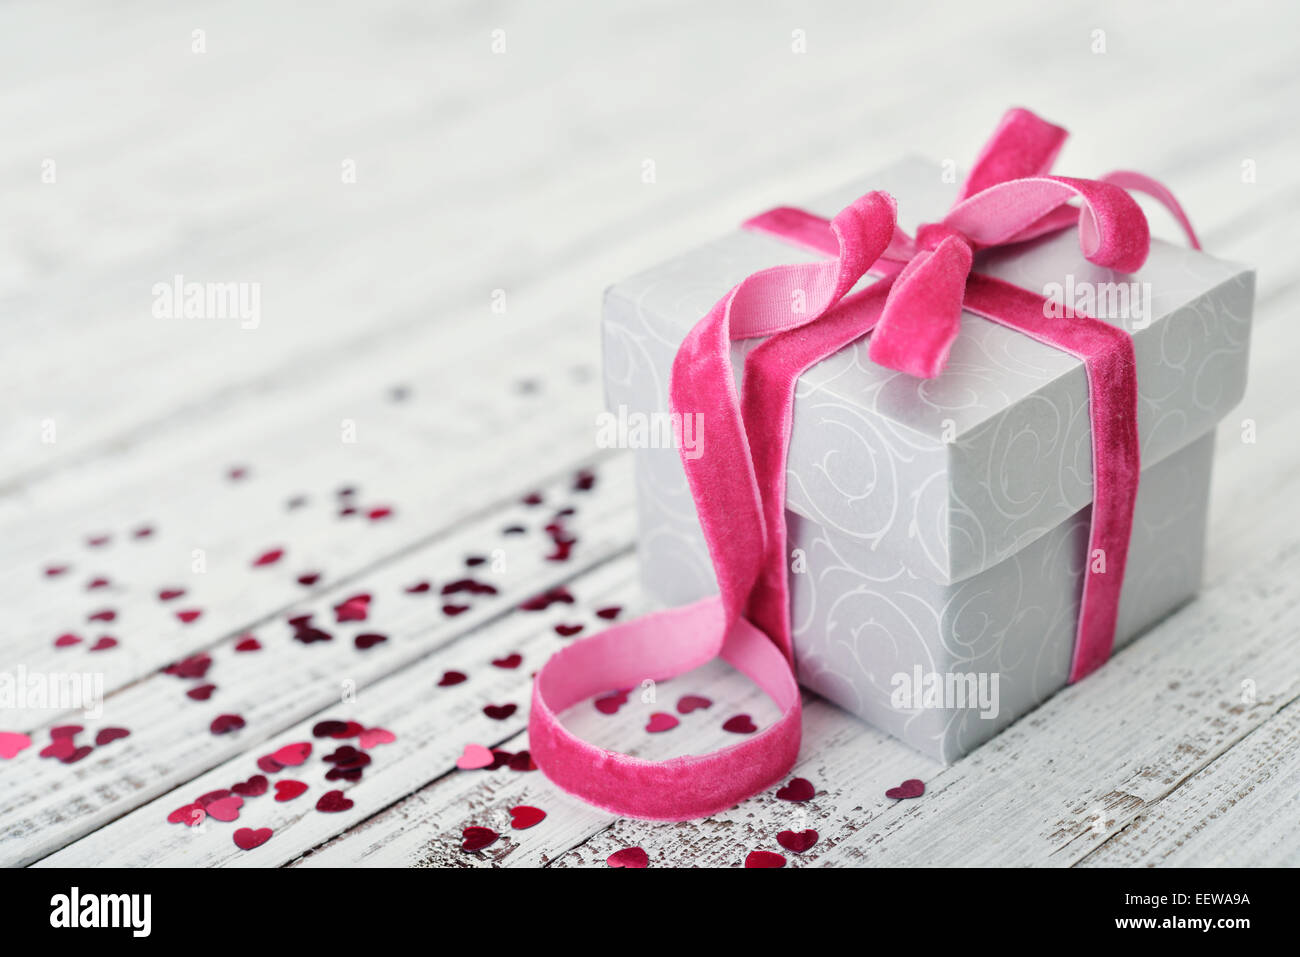 Gift Box Pink Bow Confetti Stock Photos & Gift Box Pink Bow Confetti ...